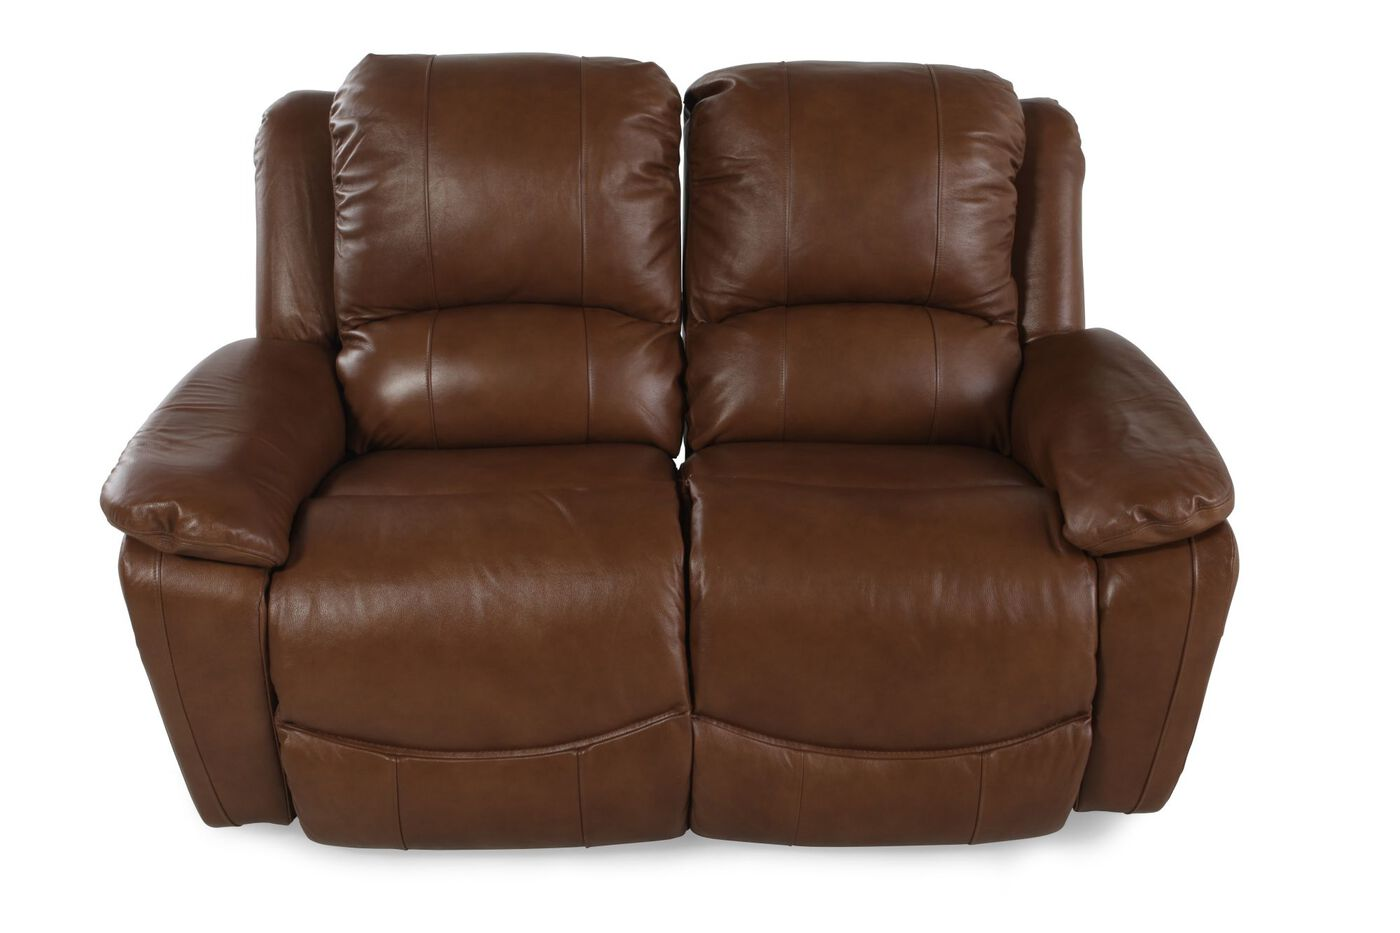 La Z Boy Owen Wheat Leather Reclining Loveseat Mathis Brothers Furniture